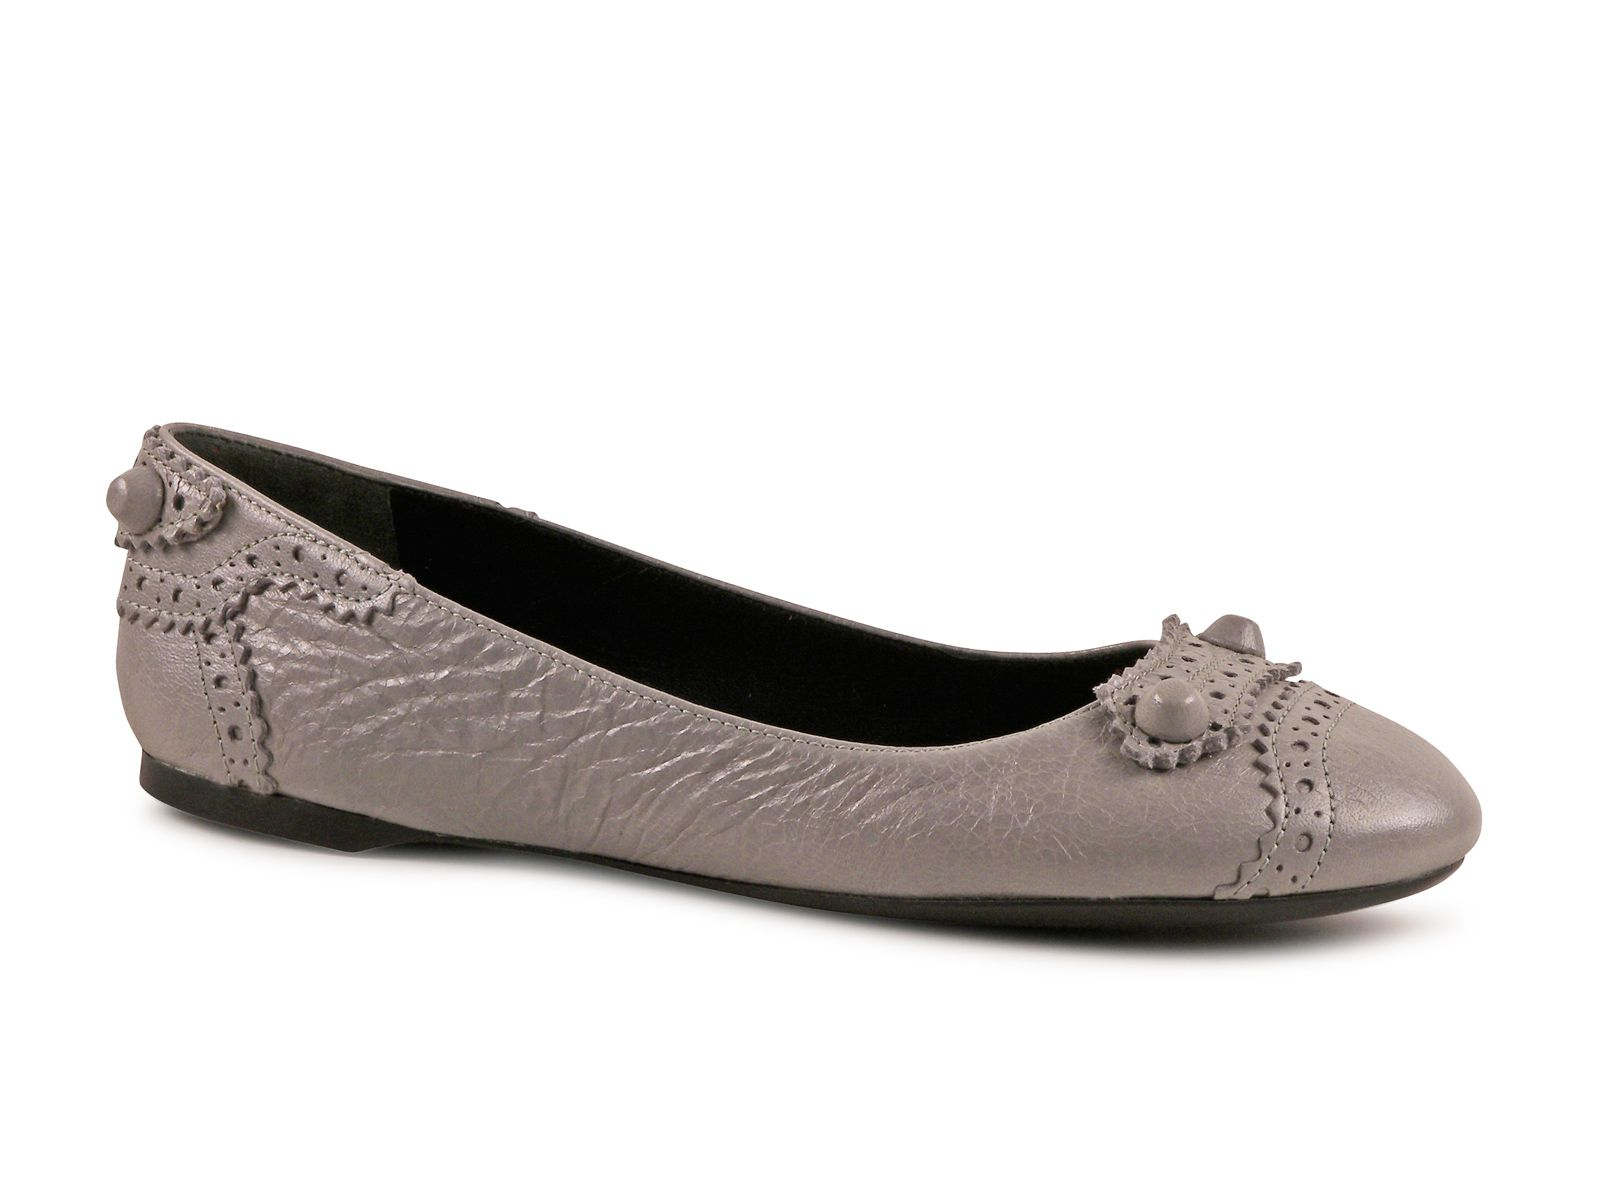 fc37e8c258 Balenciaga flats ballerina shoes in Stone Leather - Italian Boutique ...